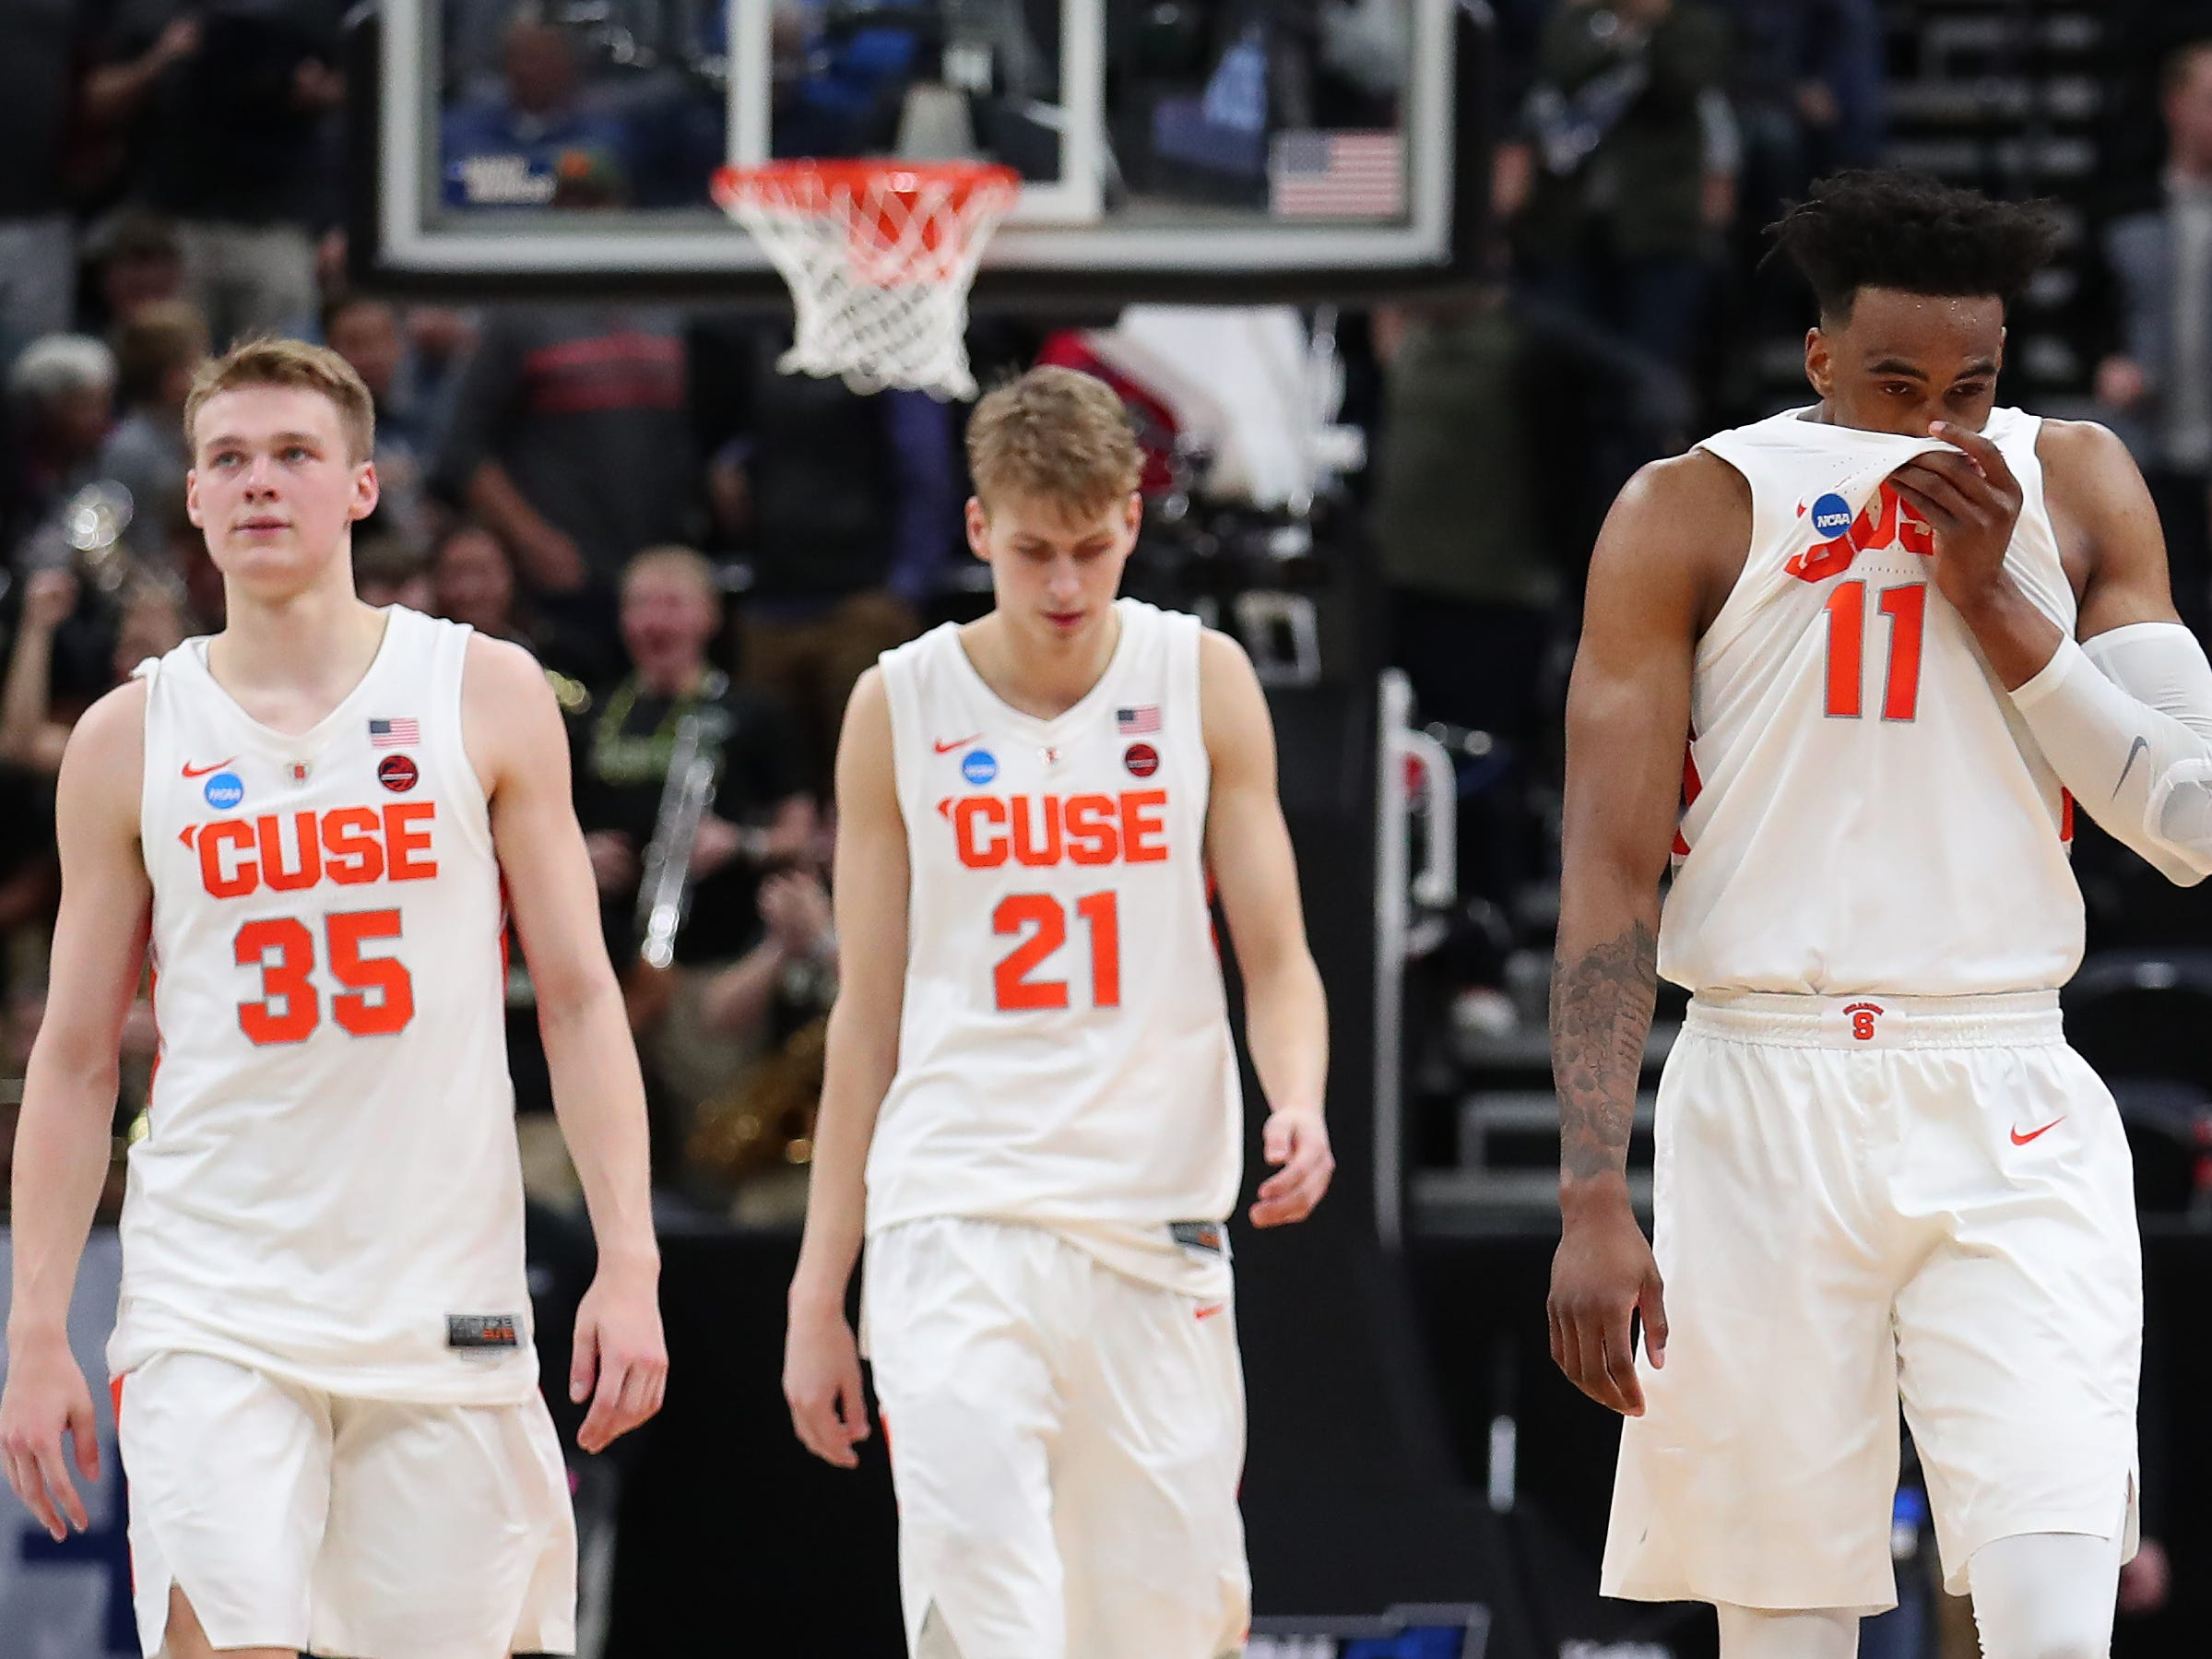 Syracuse's Buddy Boeheim (35), Marek Dolezaj (21) and Oshae Brissett (11) walk off the court after Thursday night's 78-69 loss to Baylor.